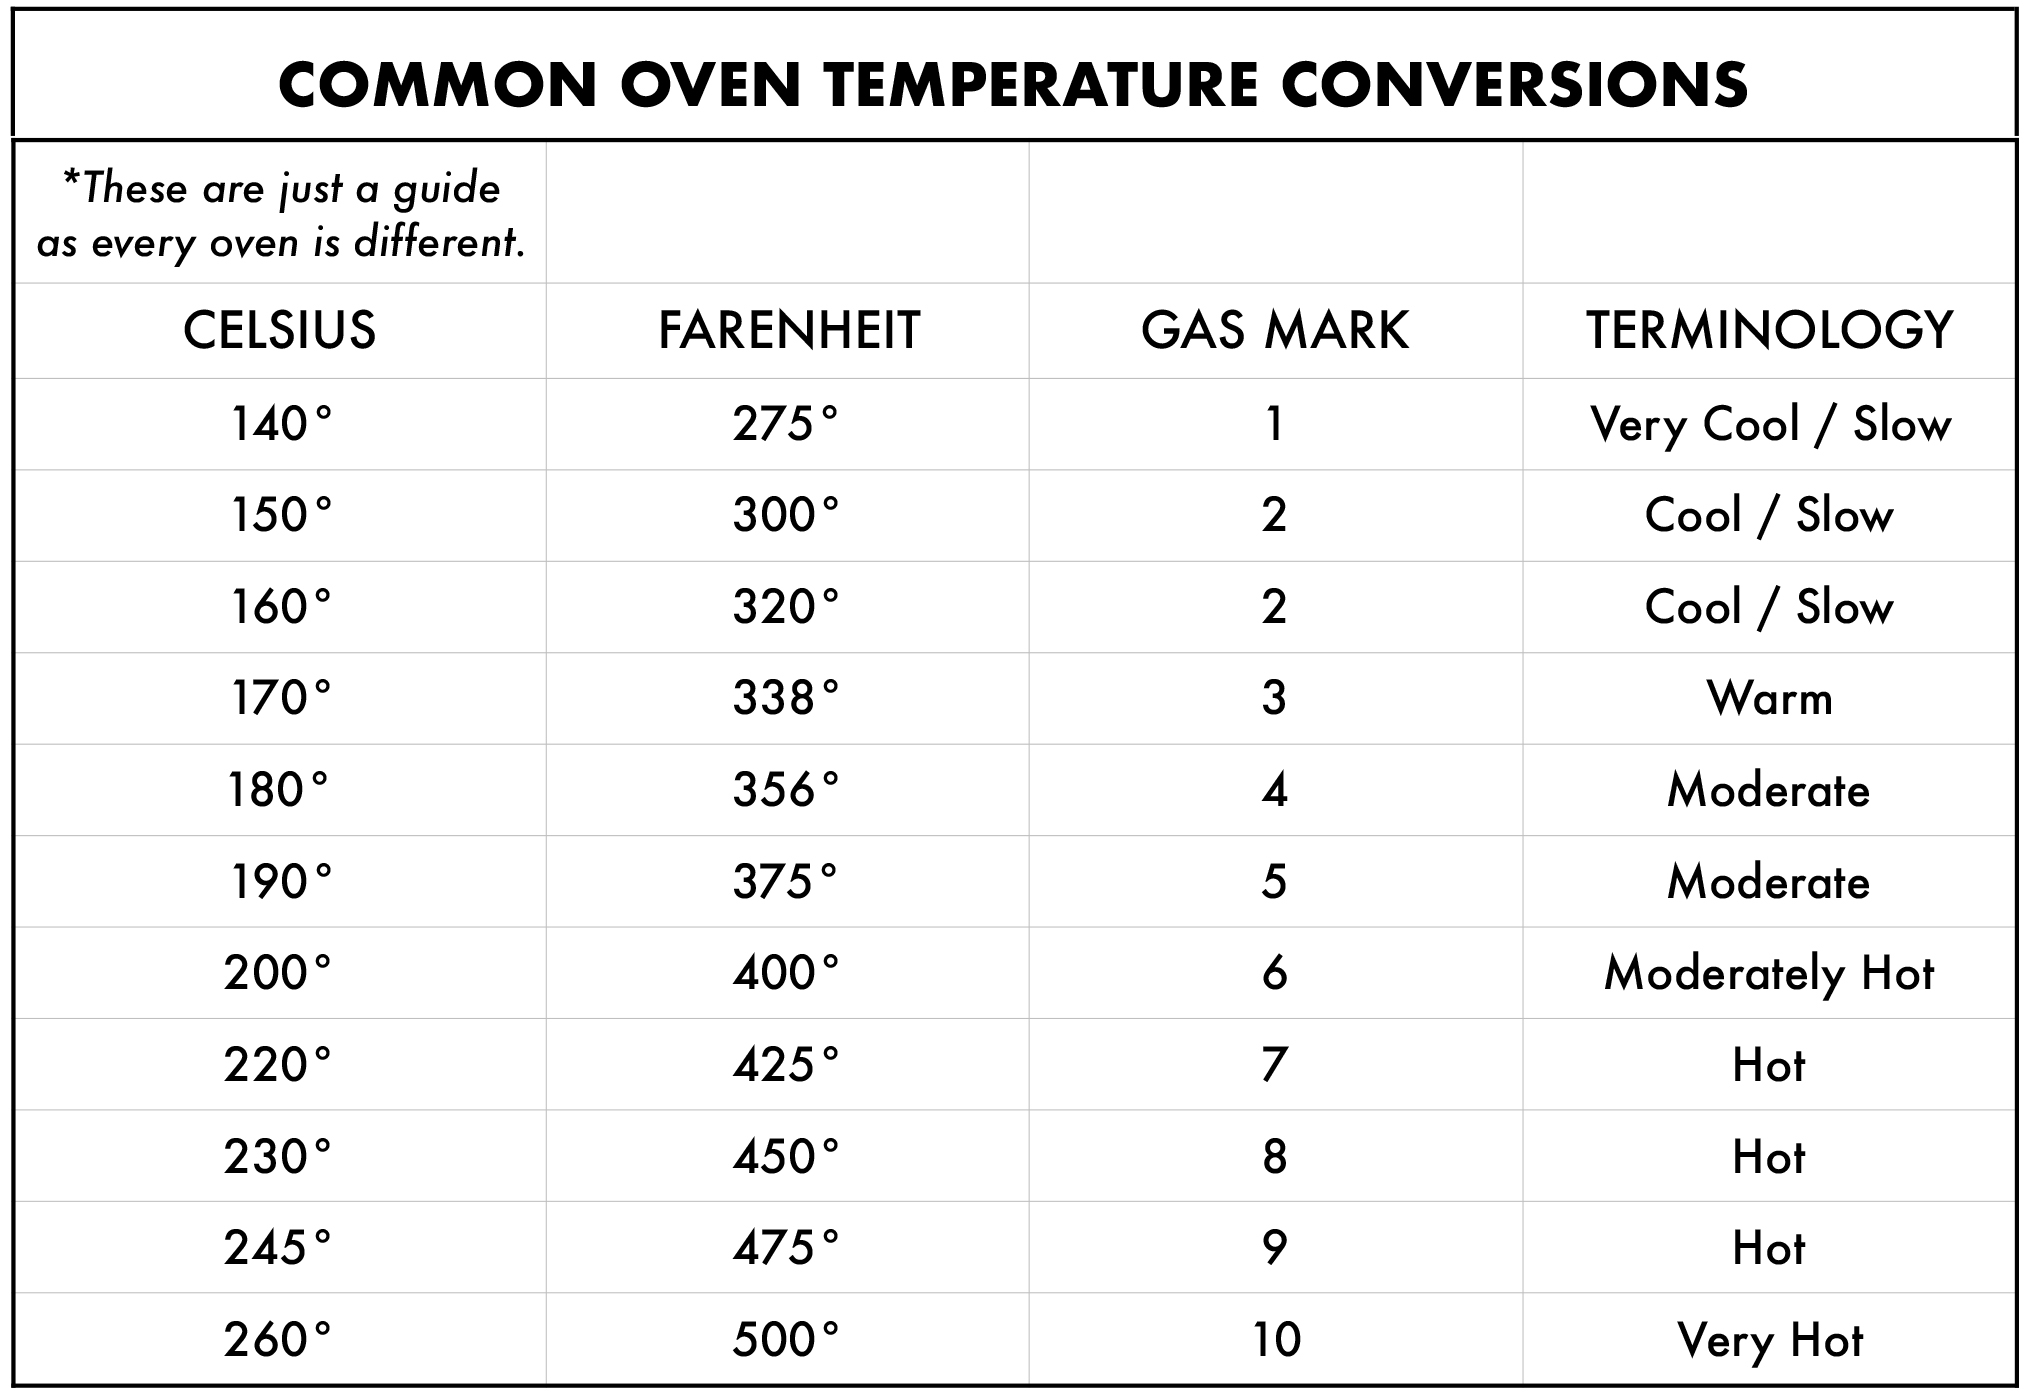 Oven conversions.jpg